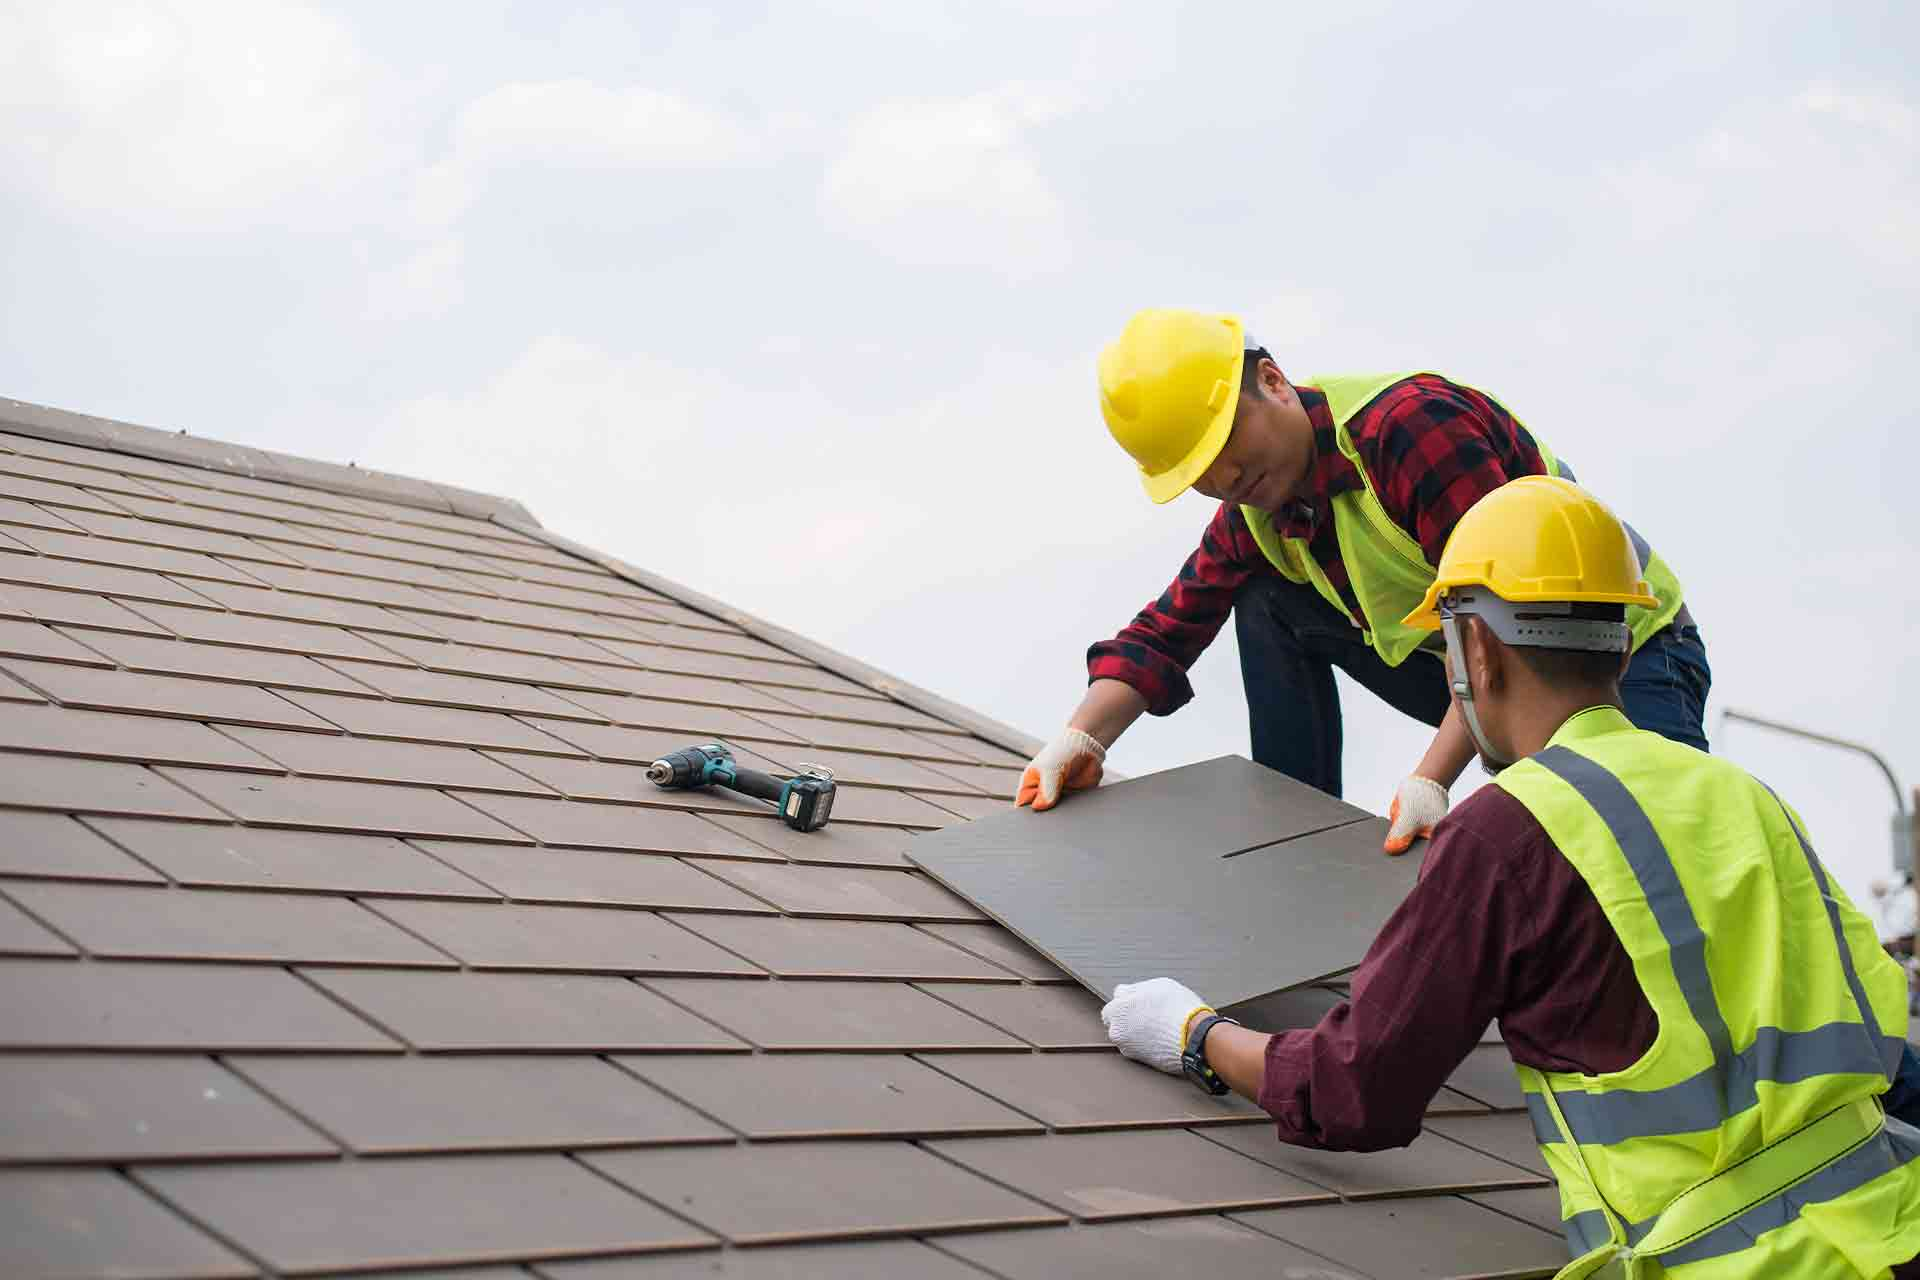 Hiring a Roofer - What Should You Look For?   Checkatrade